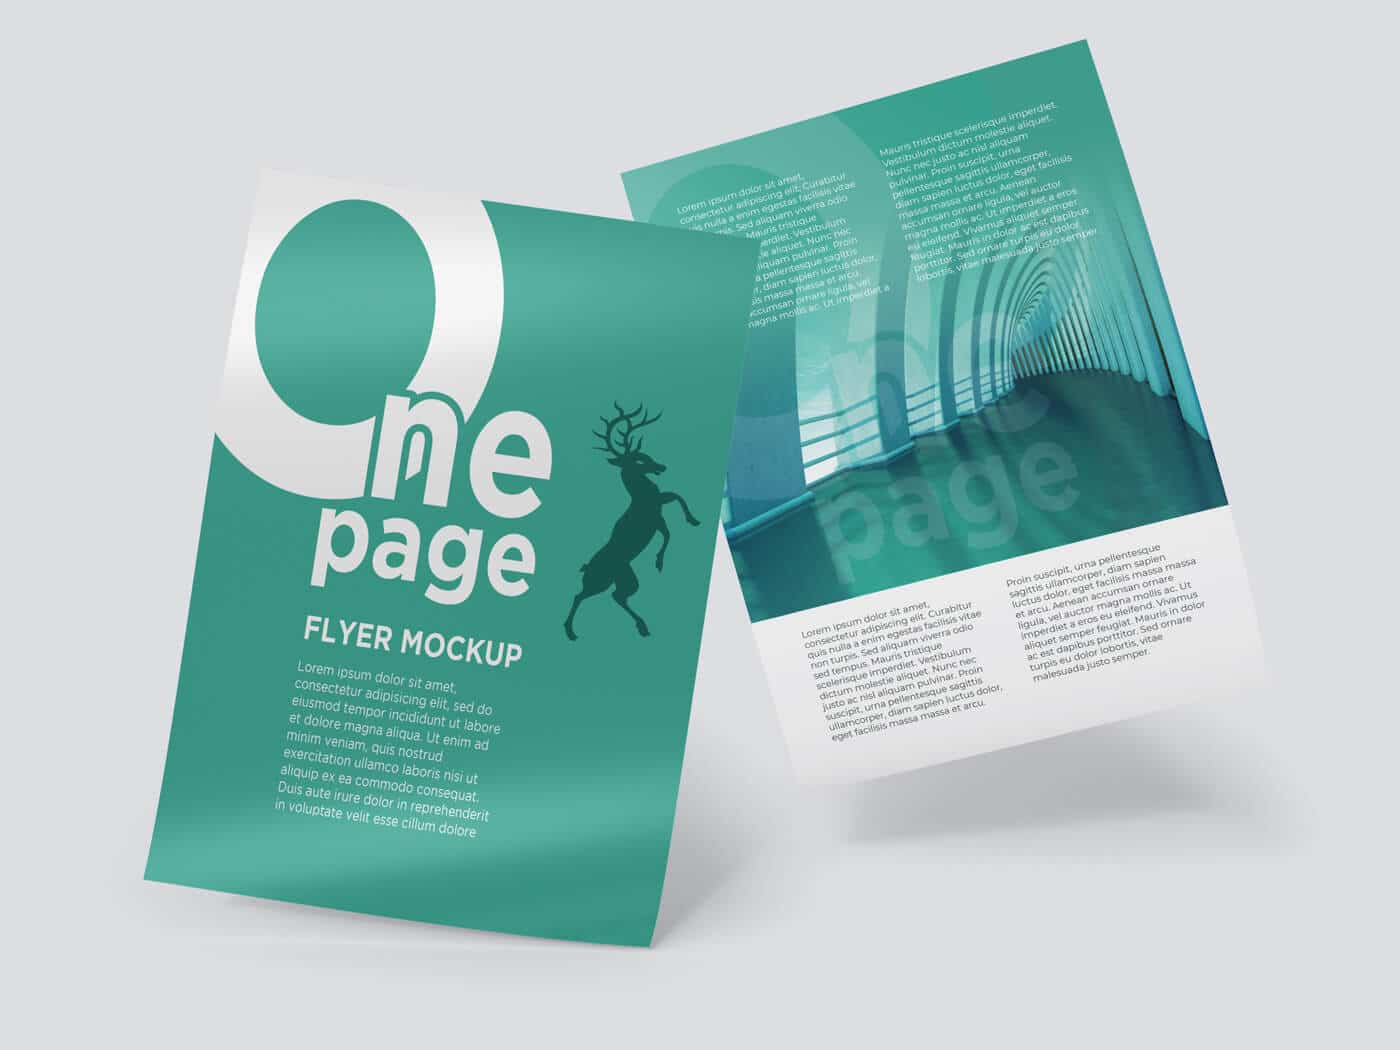 One Page Flyer Mockup